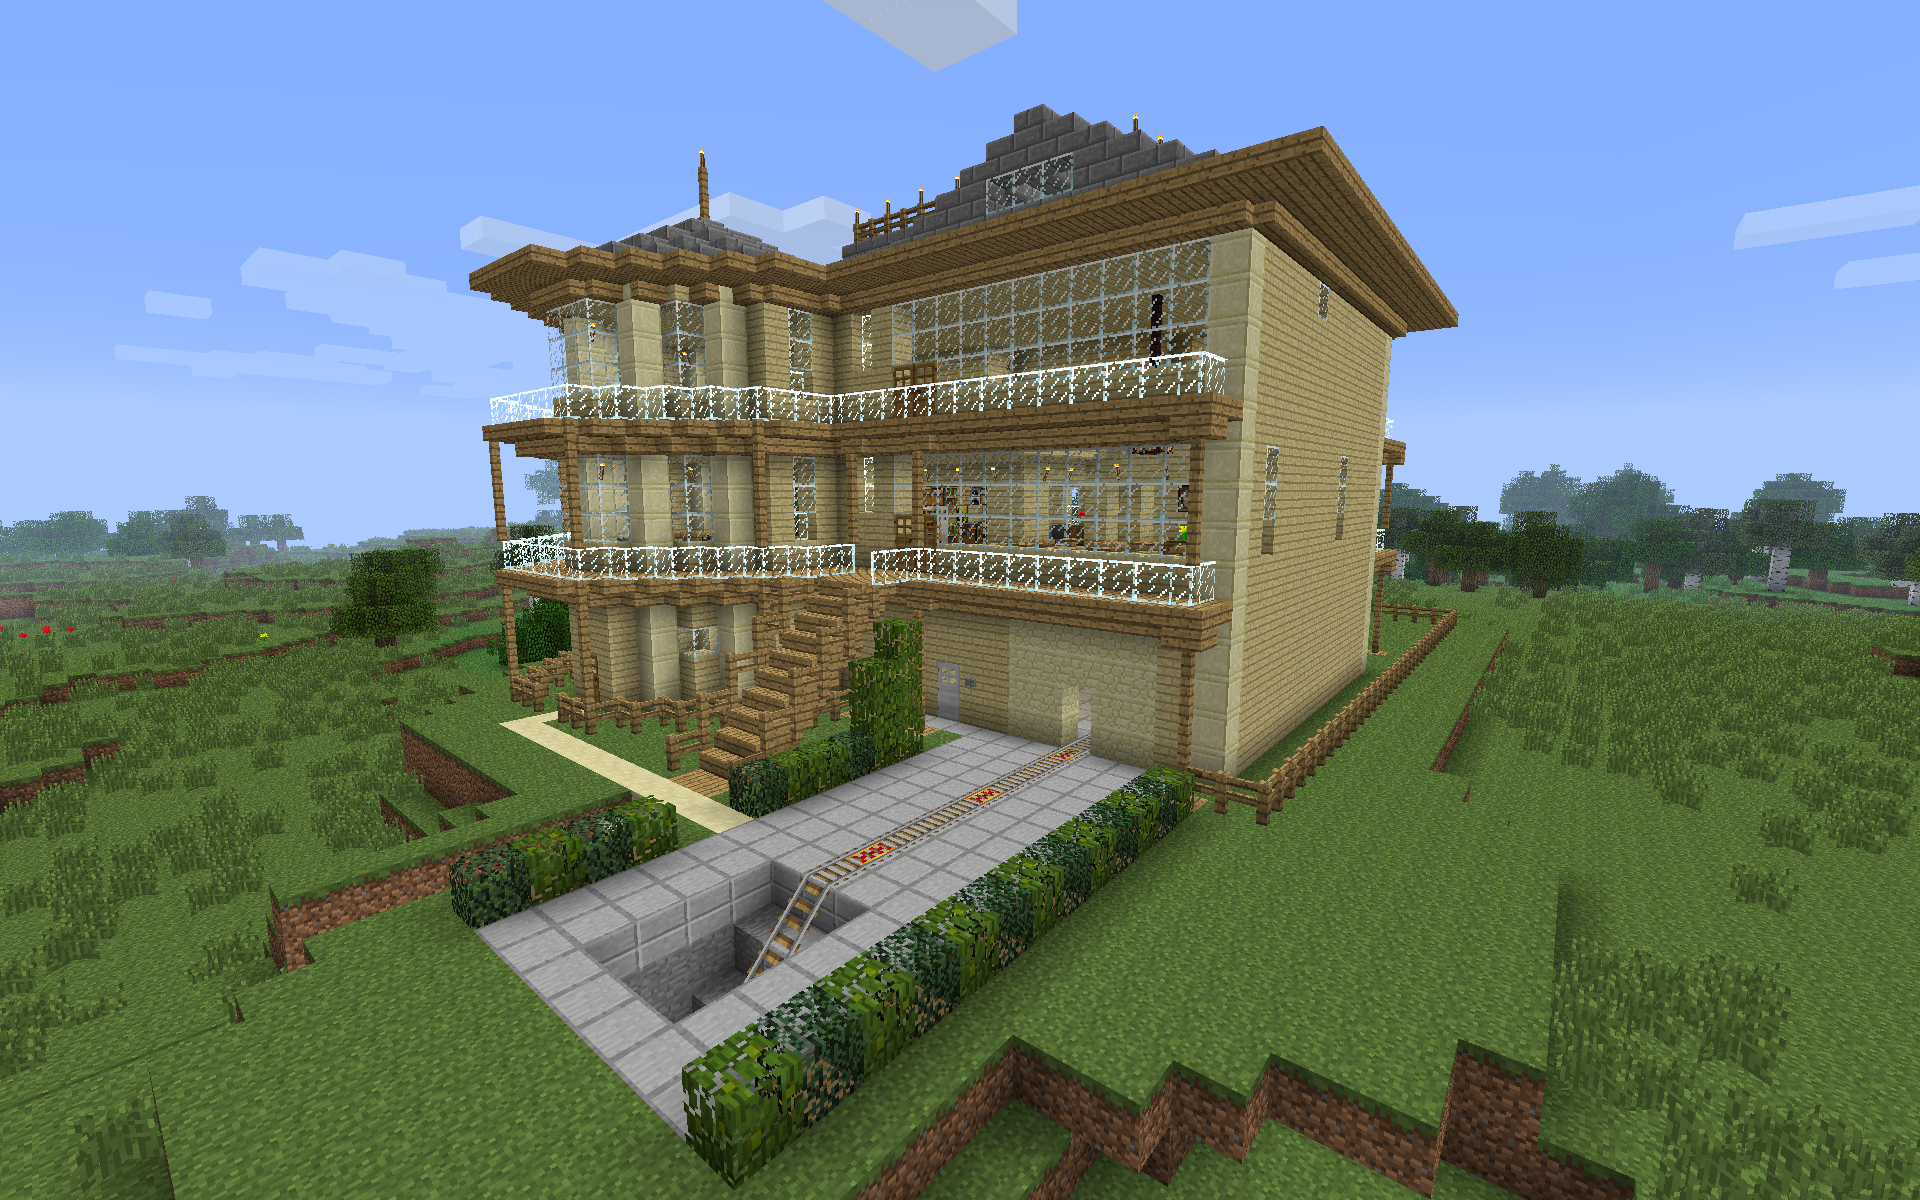 Cool house ideas modern building minecraft seeds for pc xbox also rh br pinterest